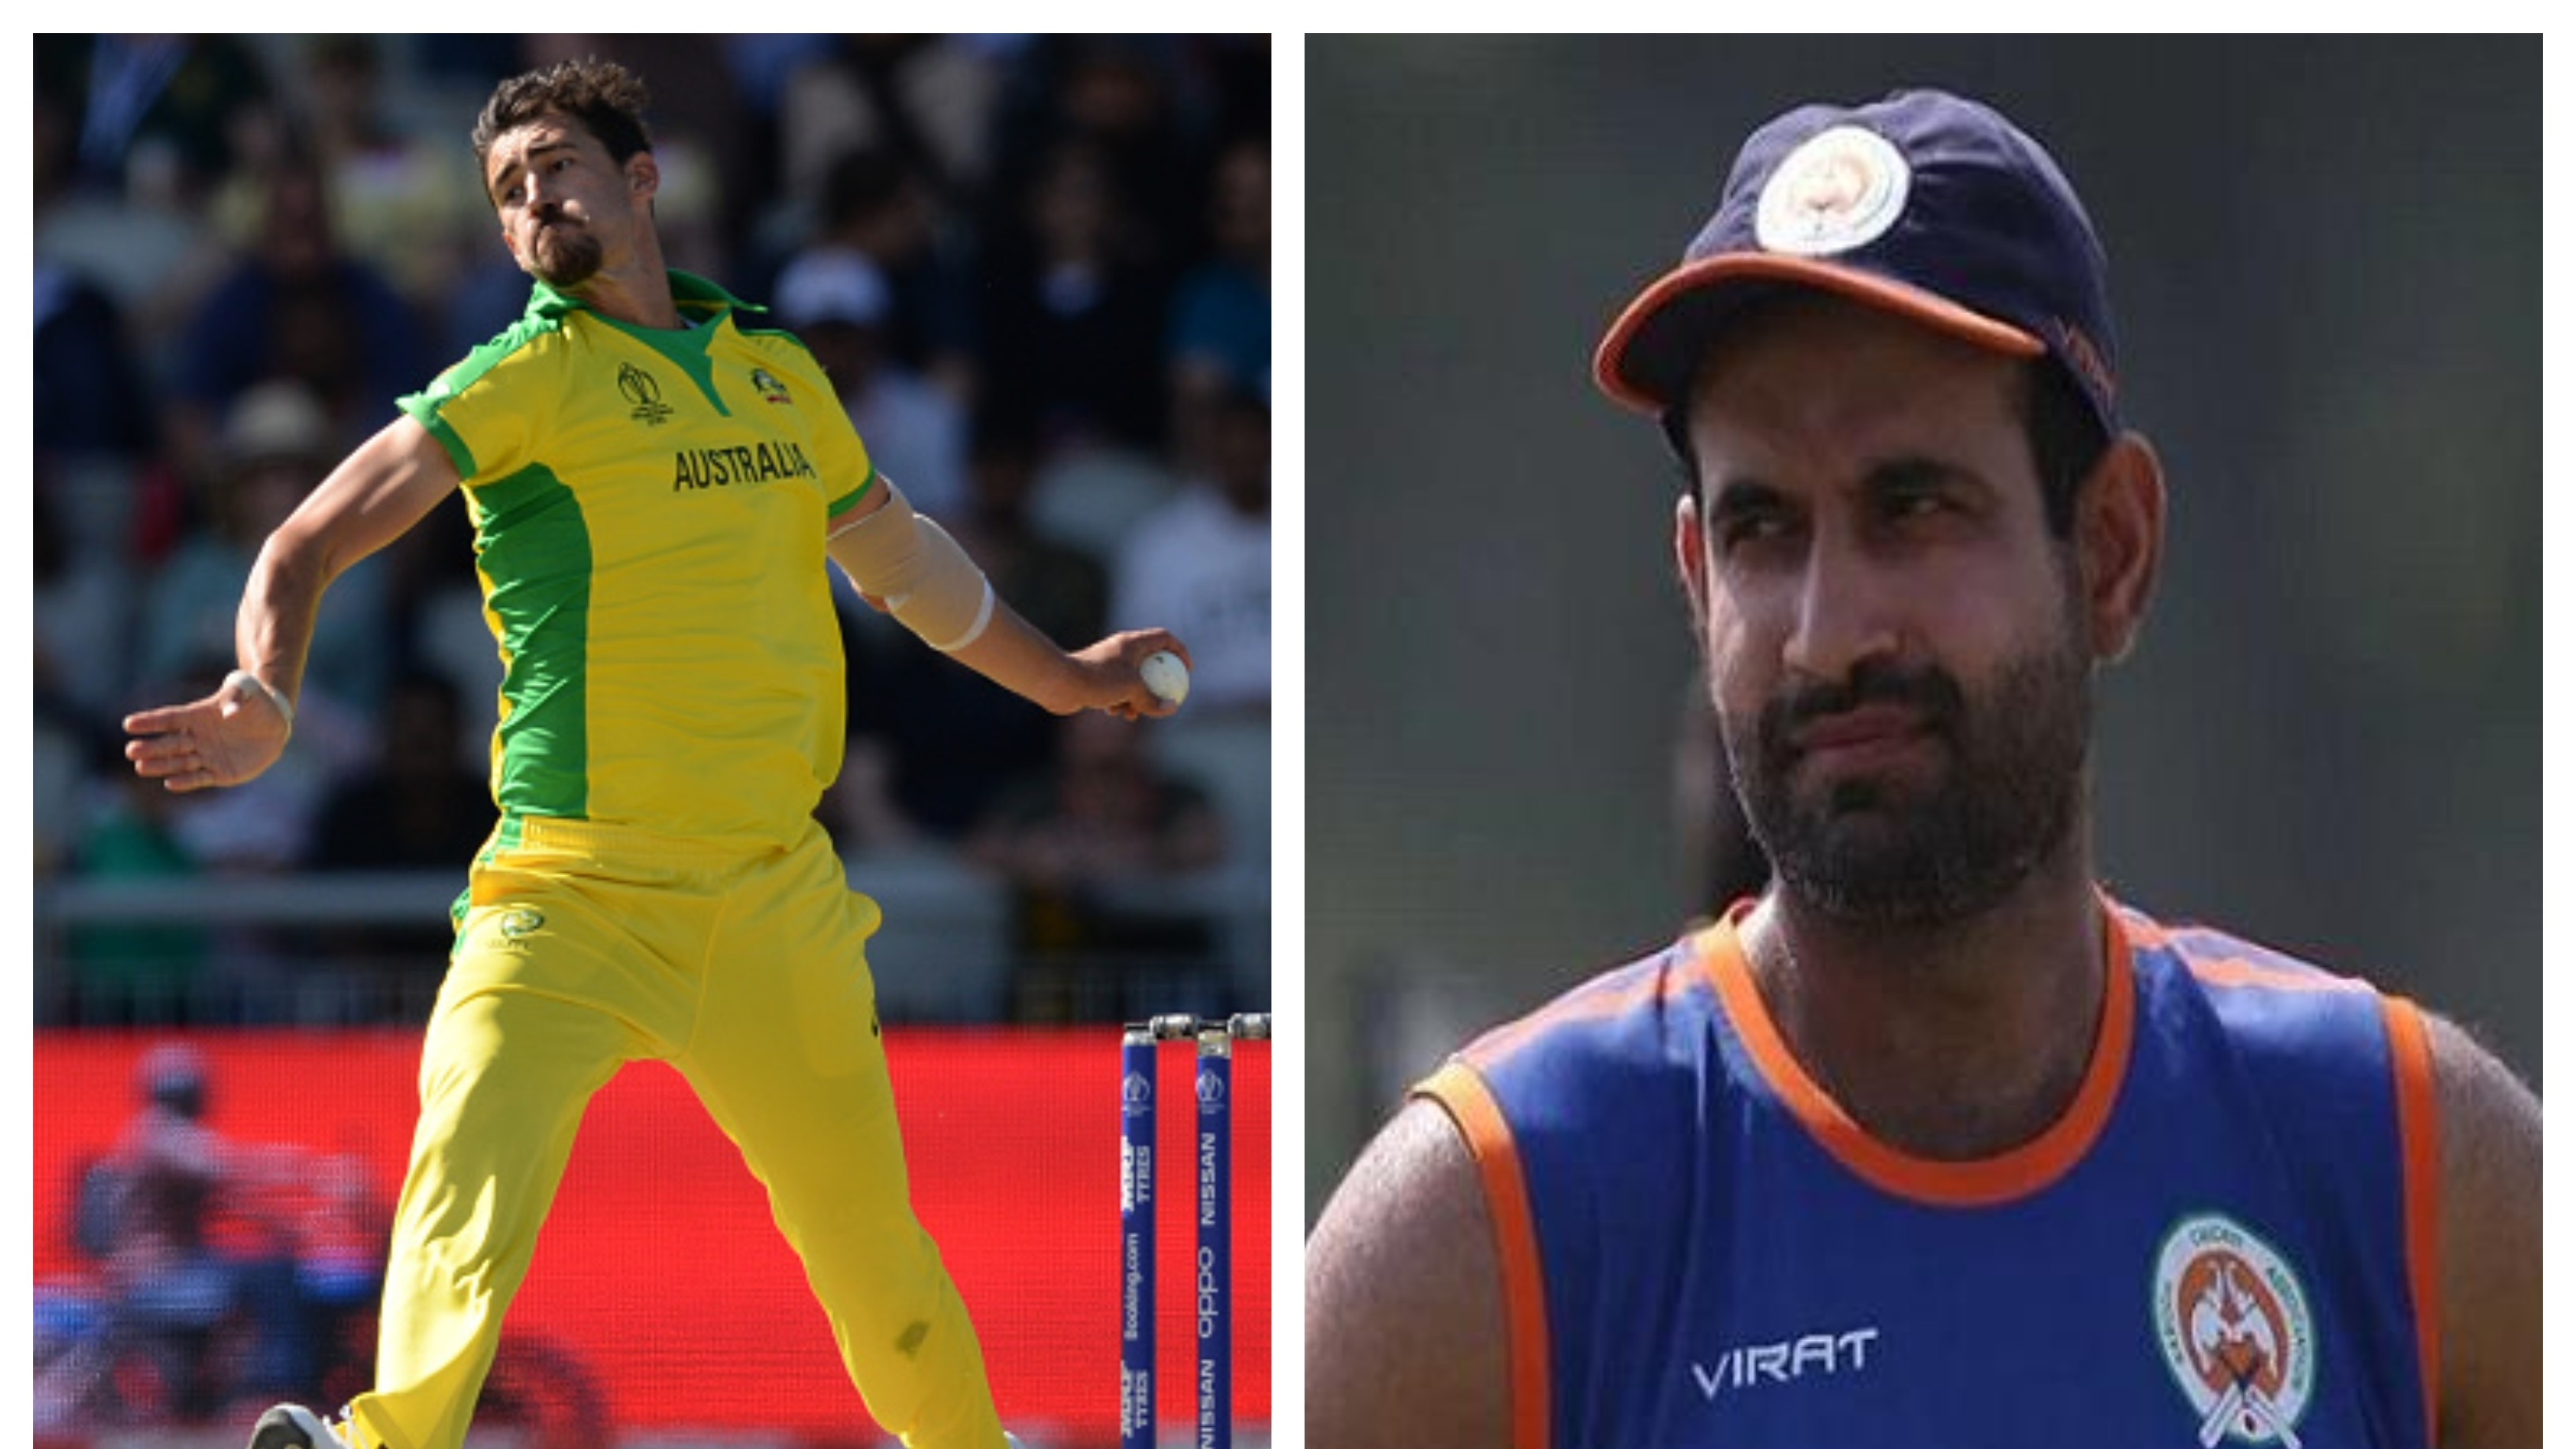 IND v AUS 2020: Starc's new action not allowing him to get it to swing, says Irfan Pathan